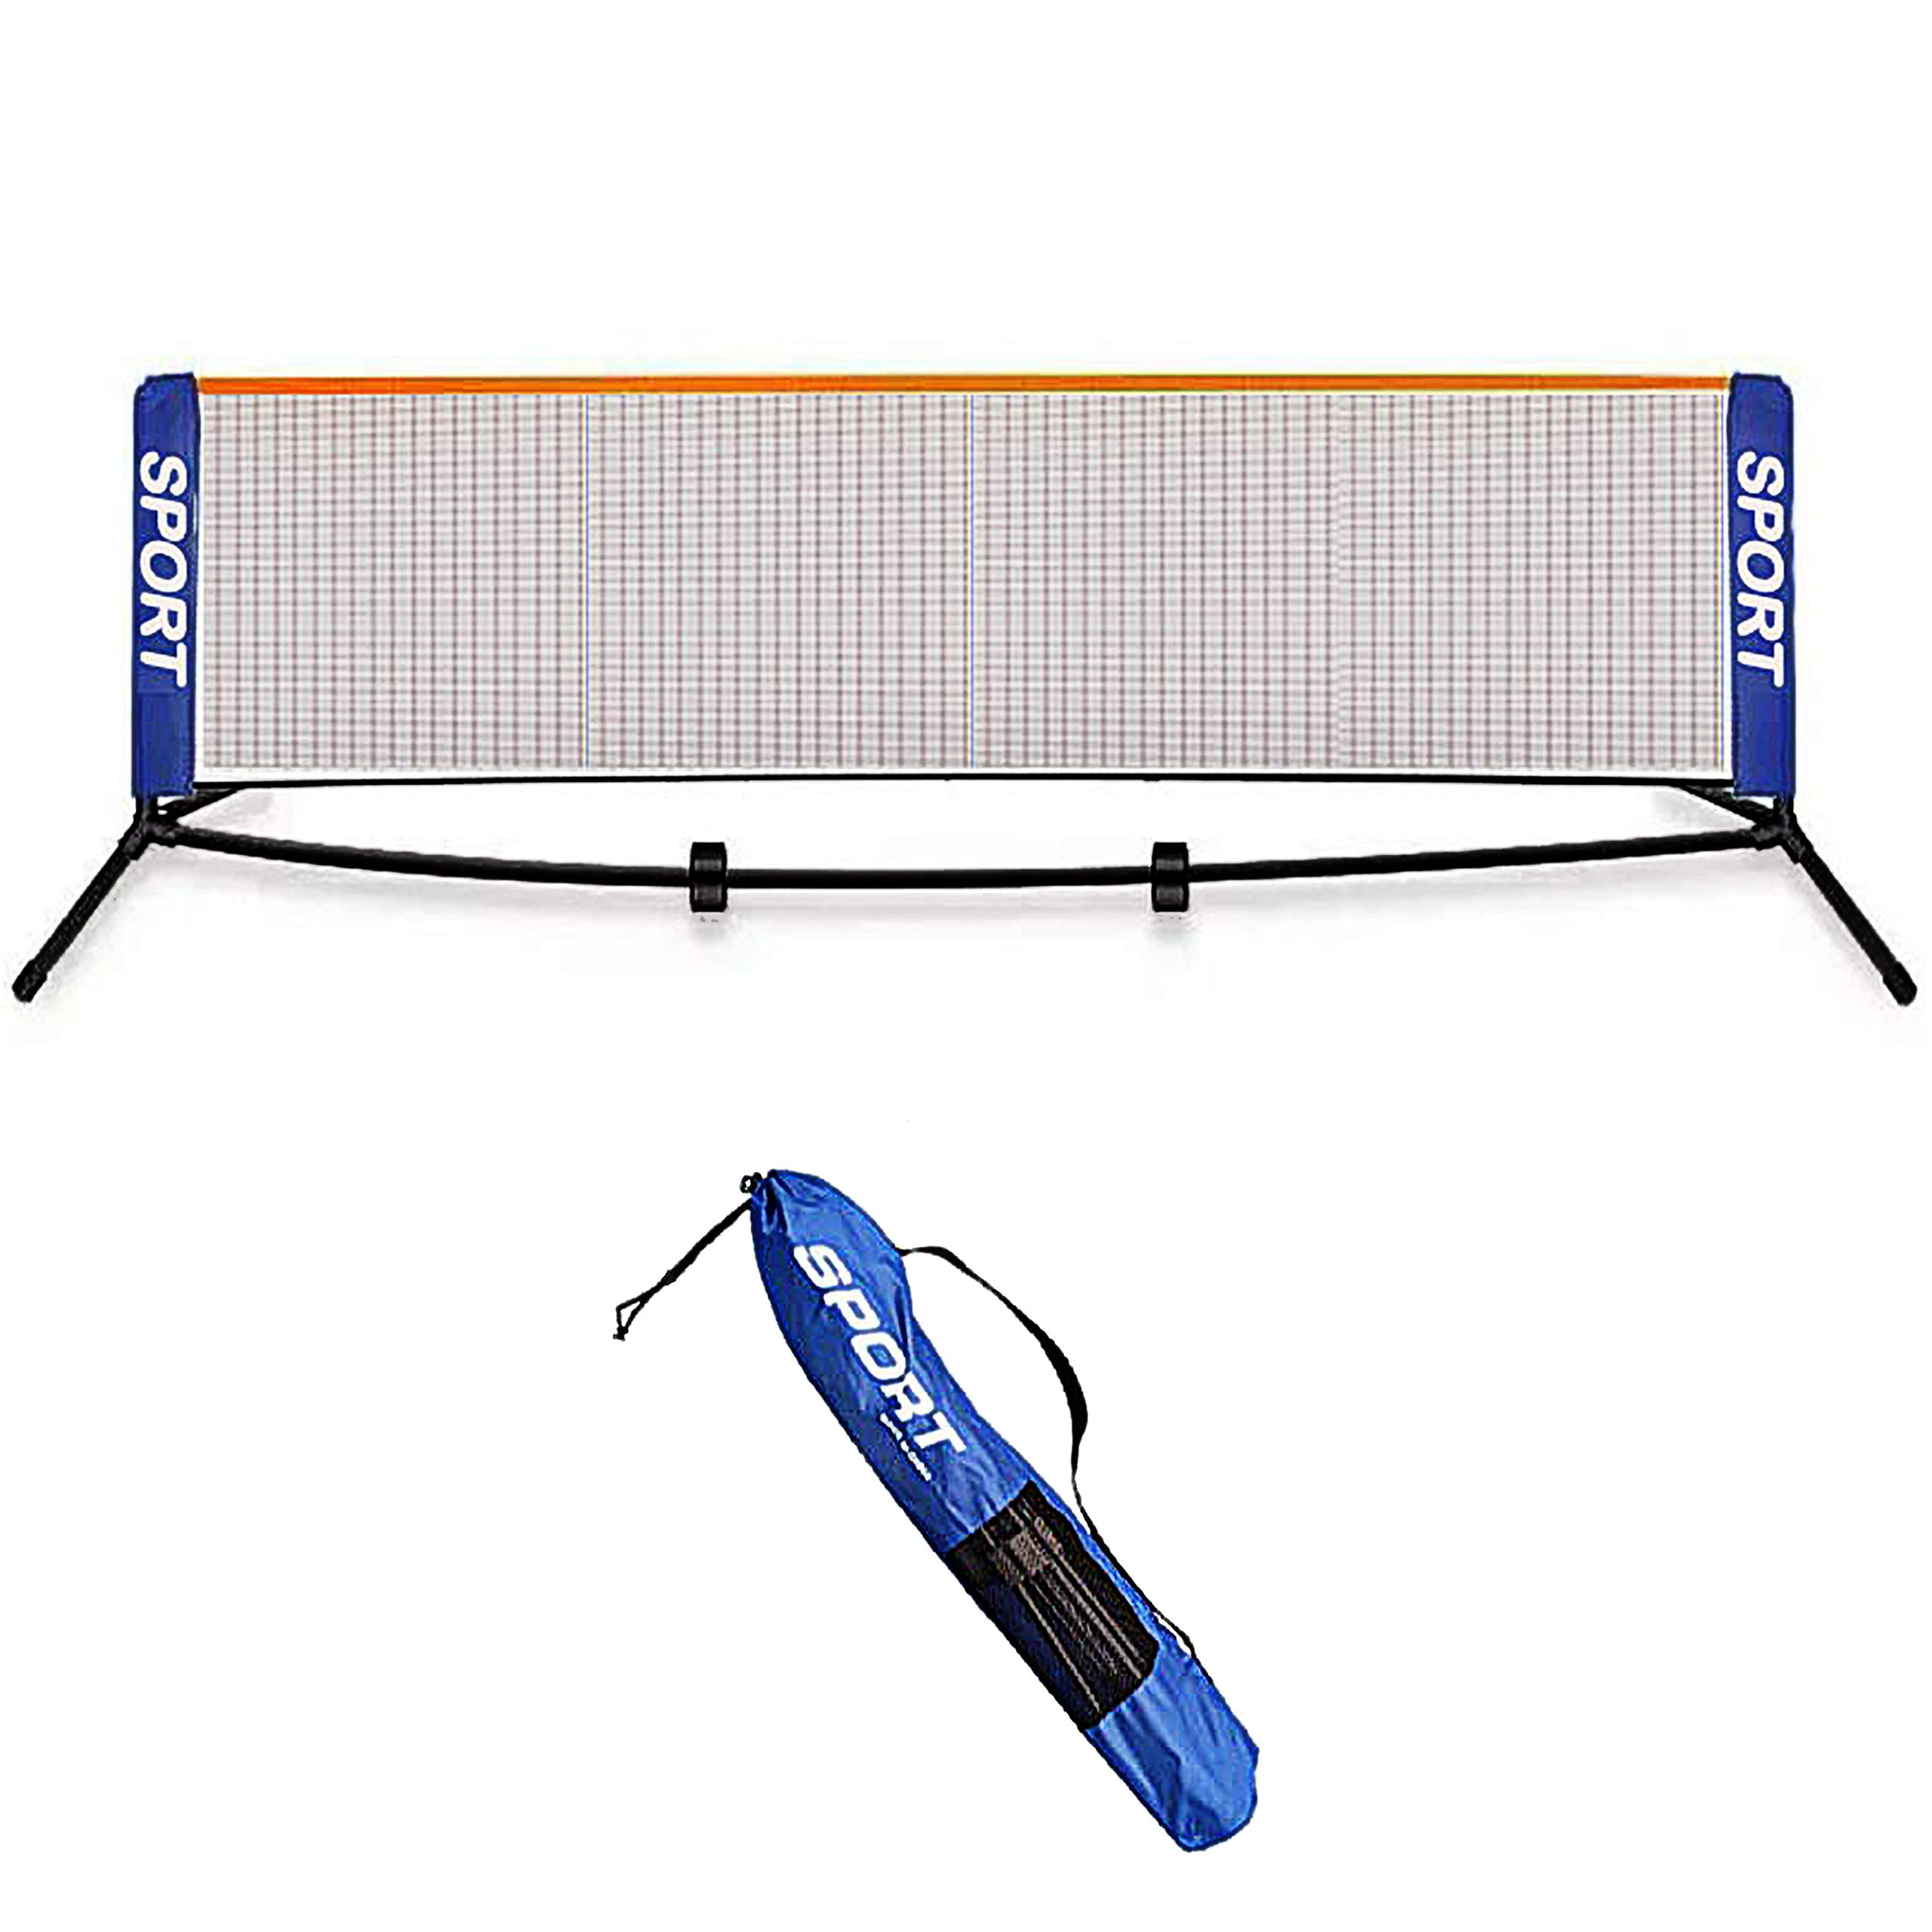 AKOZLIN Portable Badminton Net Set - 3meter Net for Tennis, Soccer Tennis, Pickleball, Kids Volleyball - Easy Setup Nylon Sports Net with Poles - for Indoor or Outdoor Court, Beach, Driveway